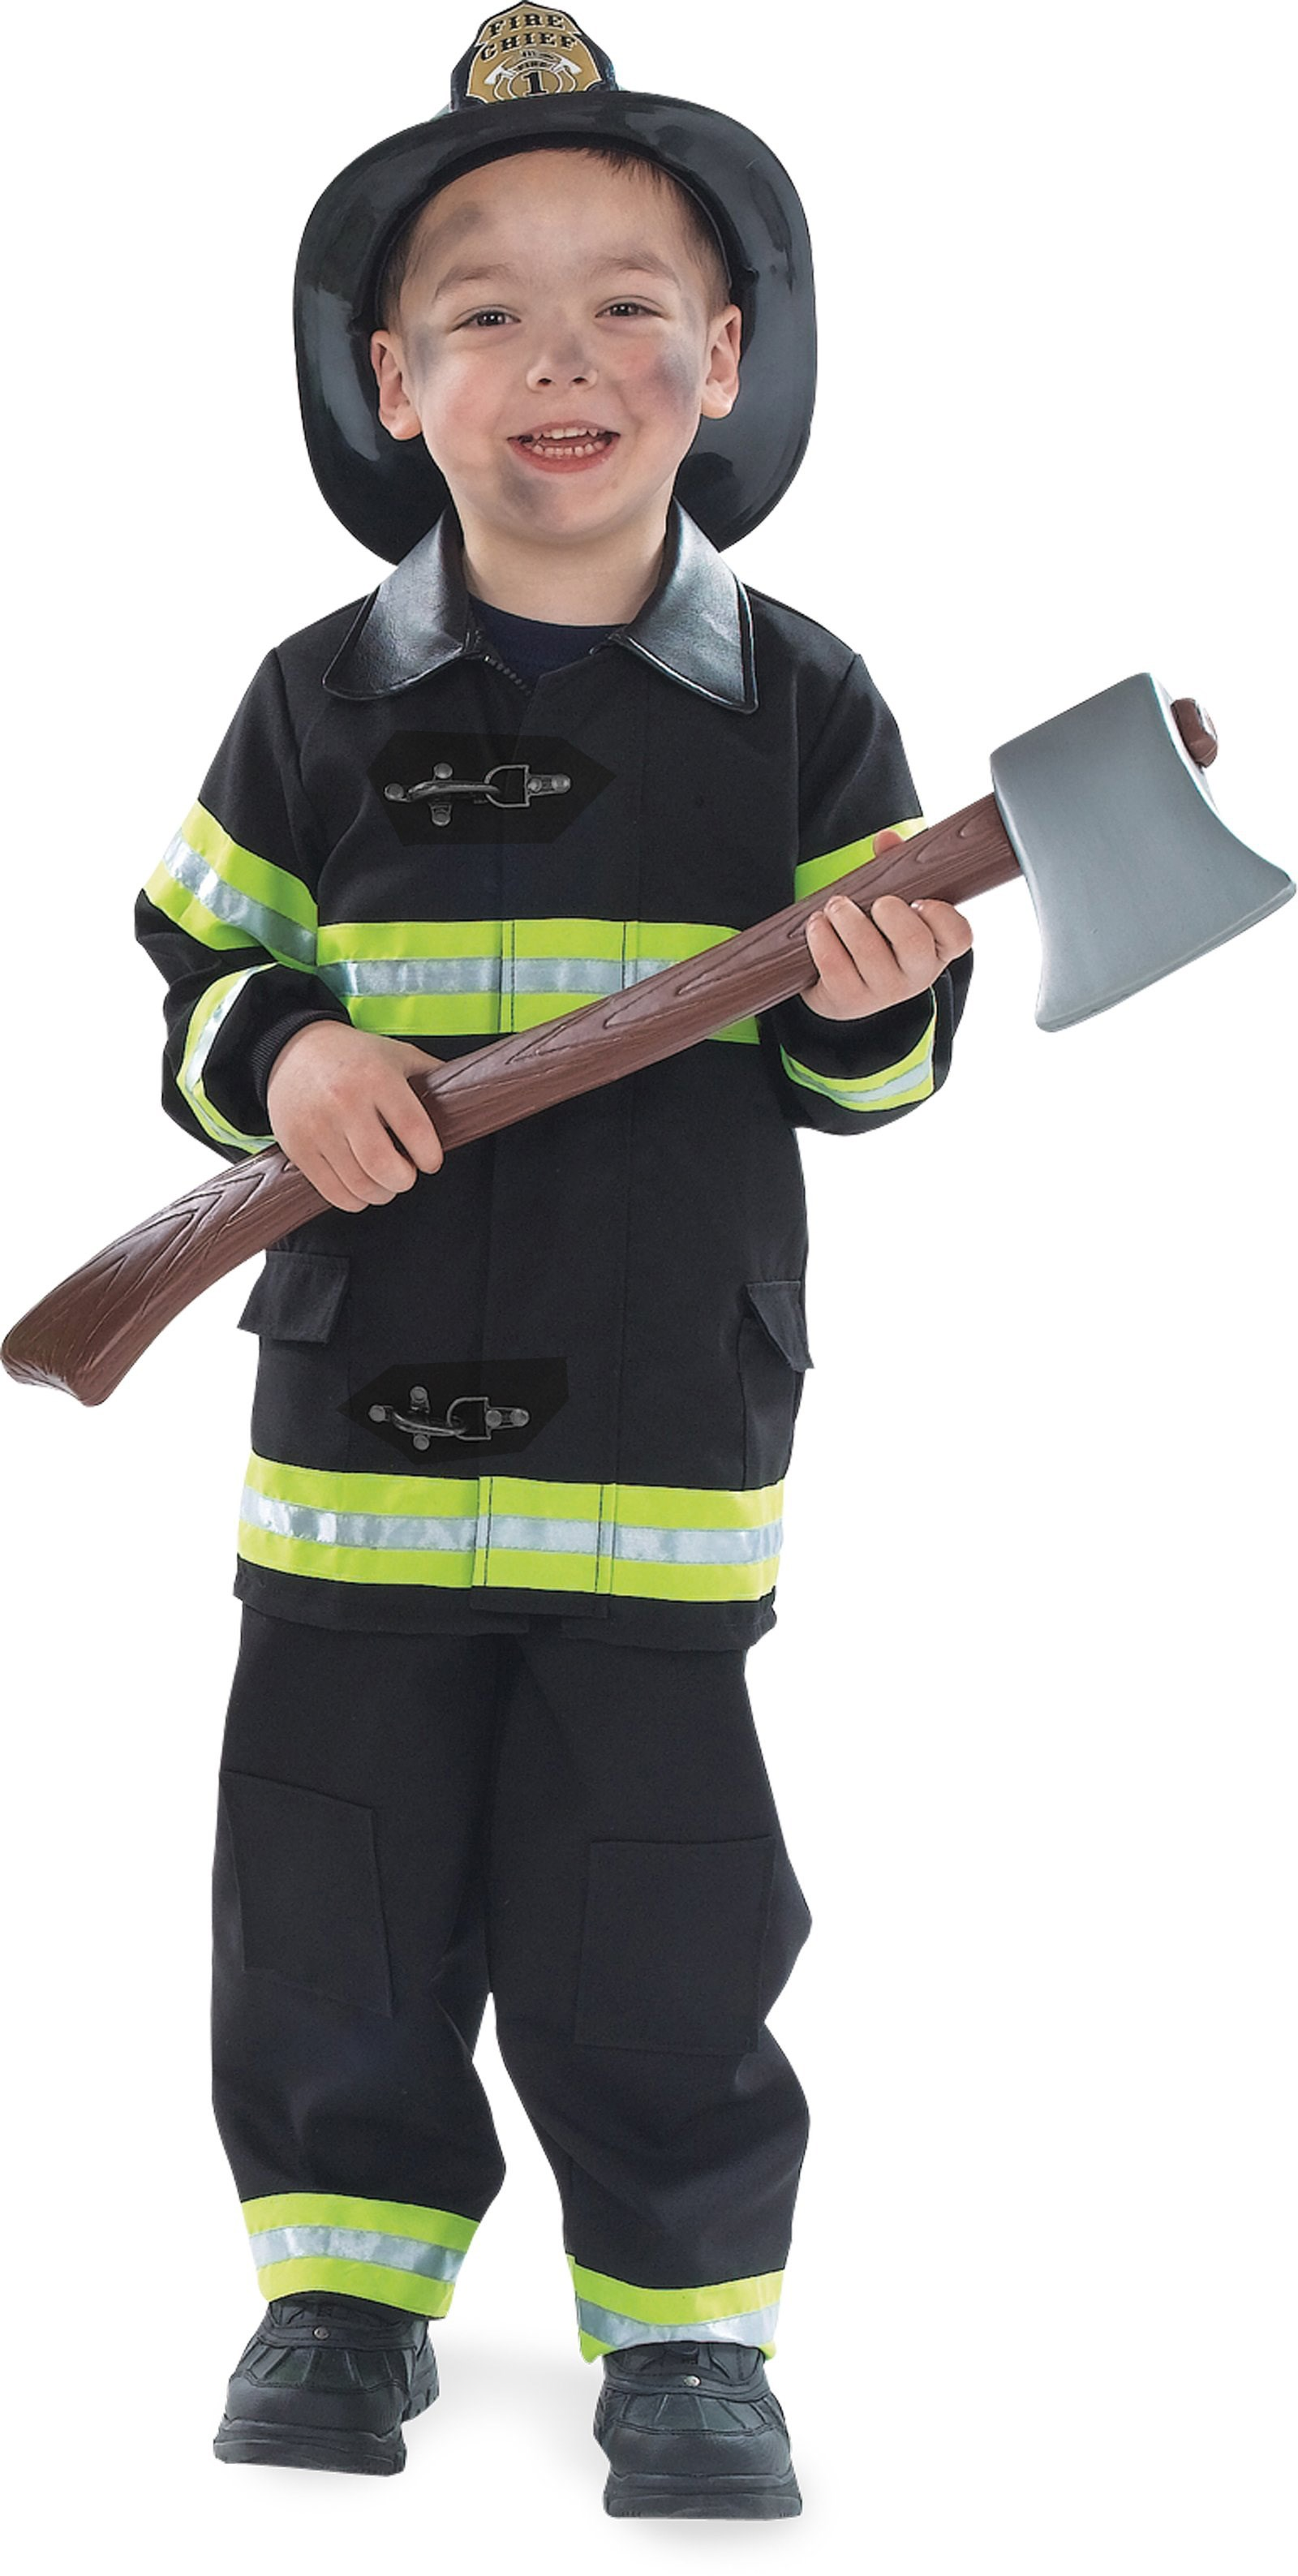 Firefighter Costume Toddler/Child (Black) Small (4-6)